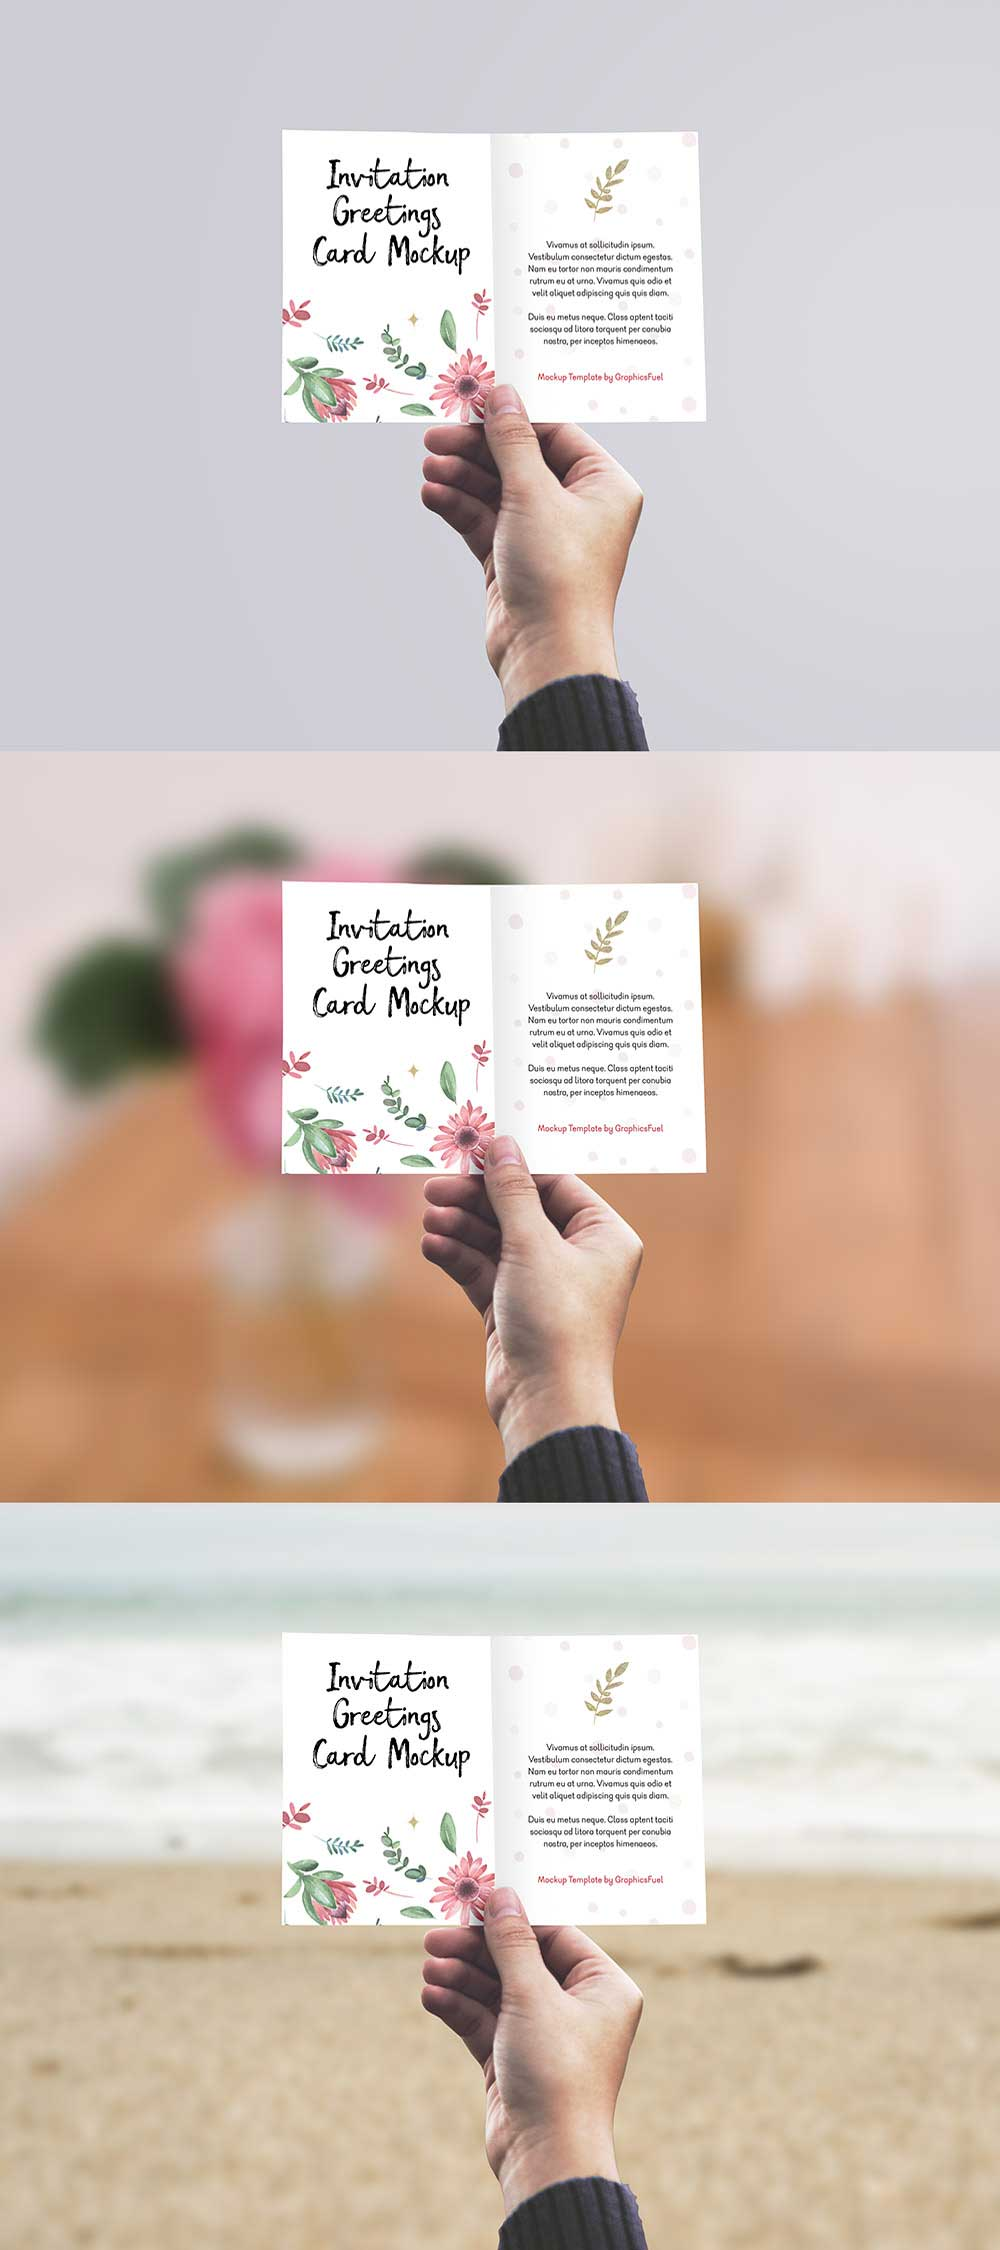 Greeting-Card-In-Hand-Mockup-PSD